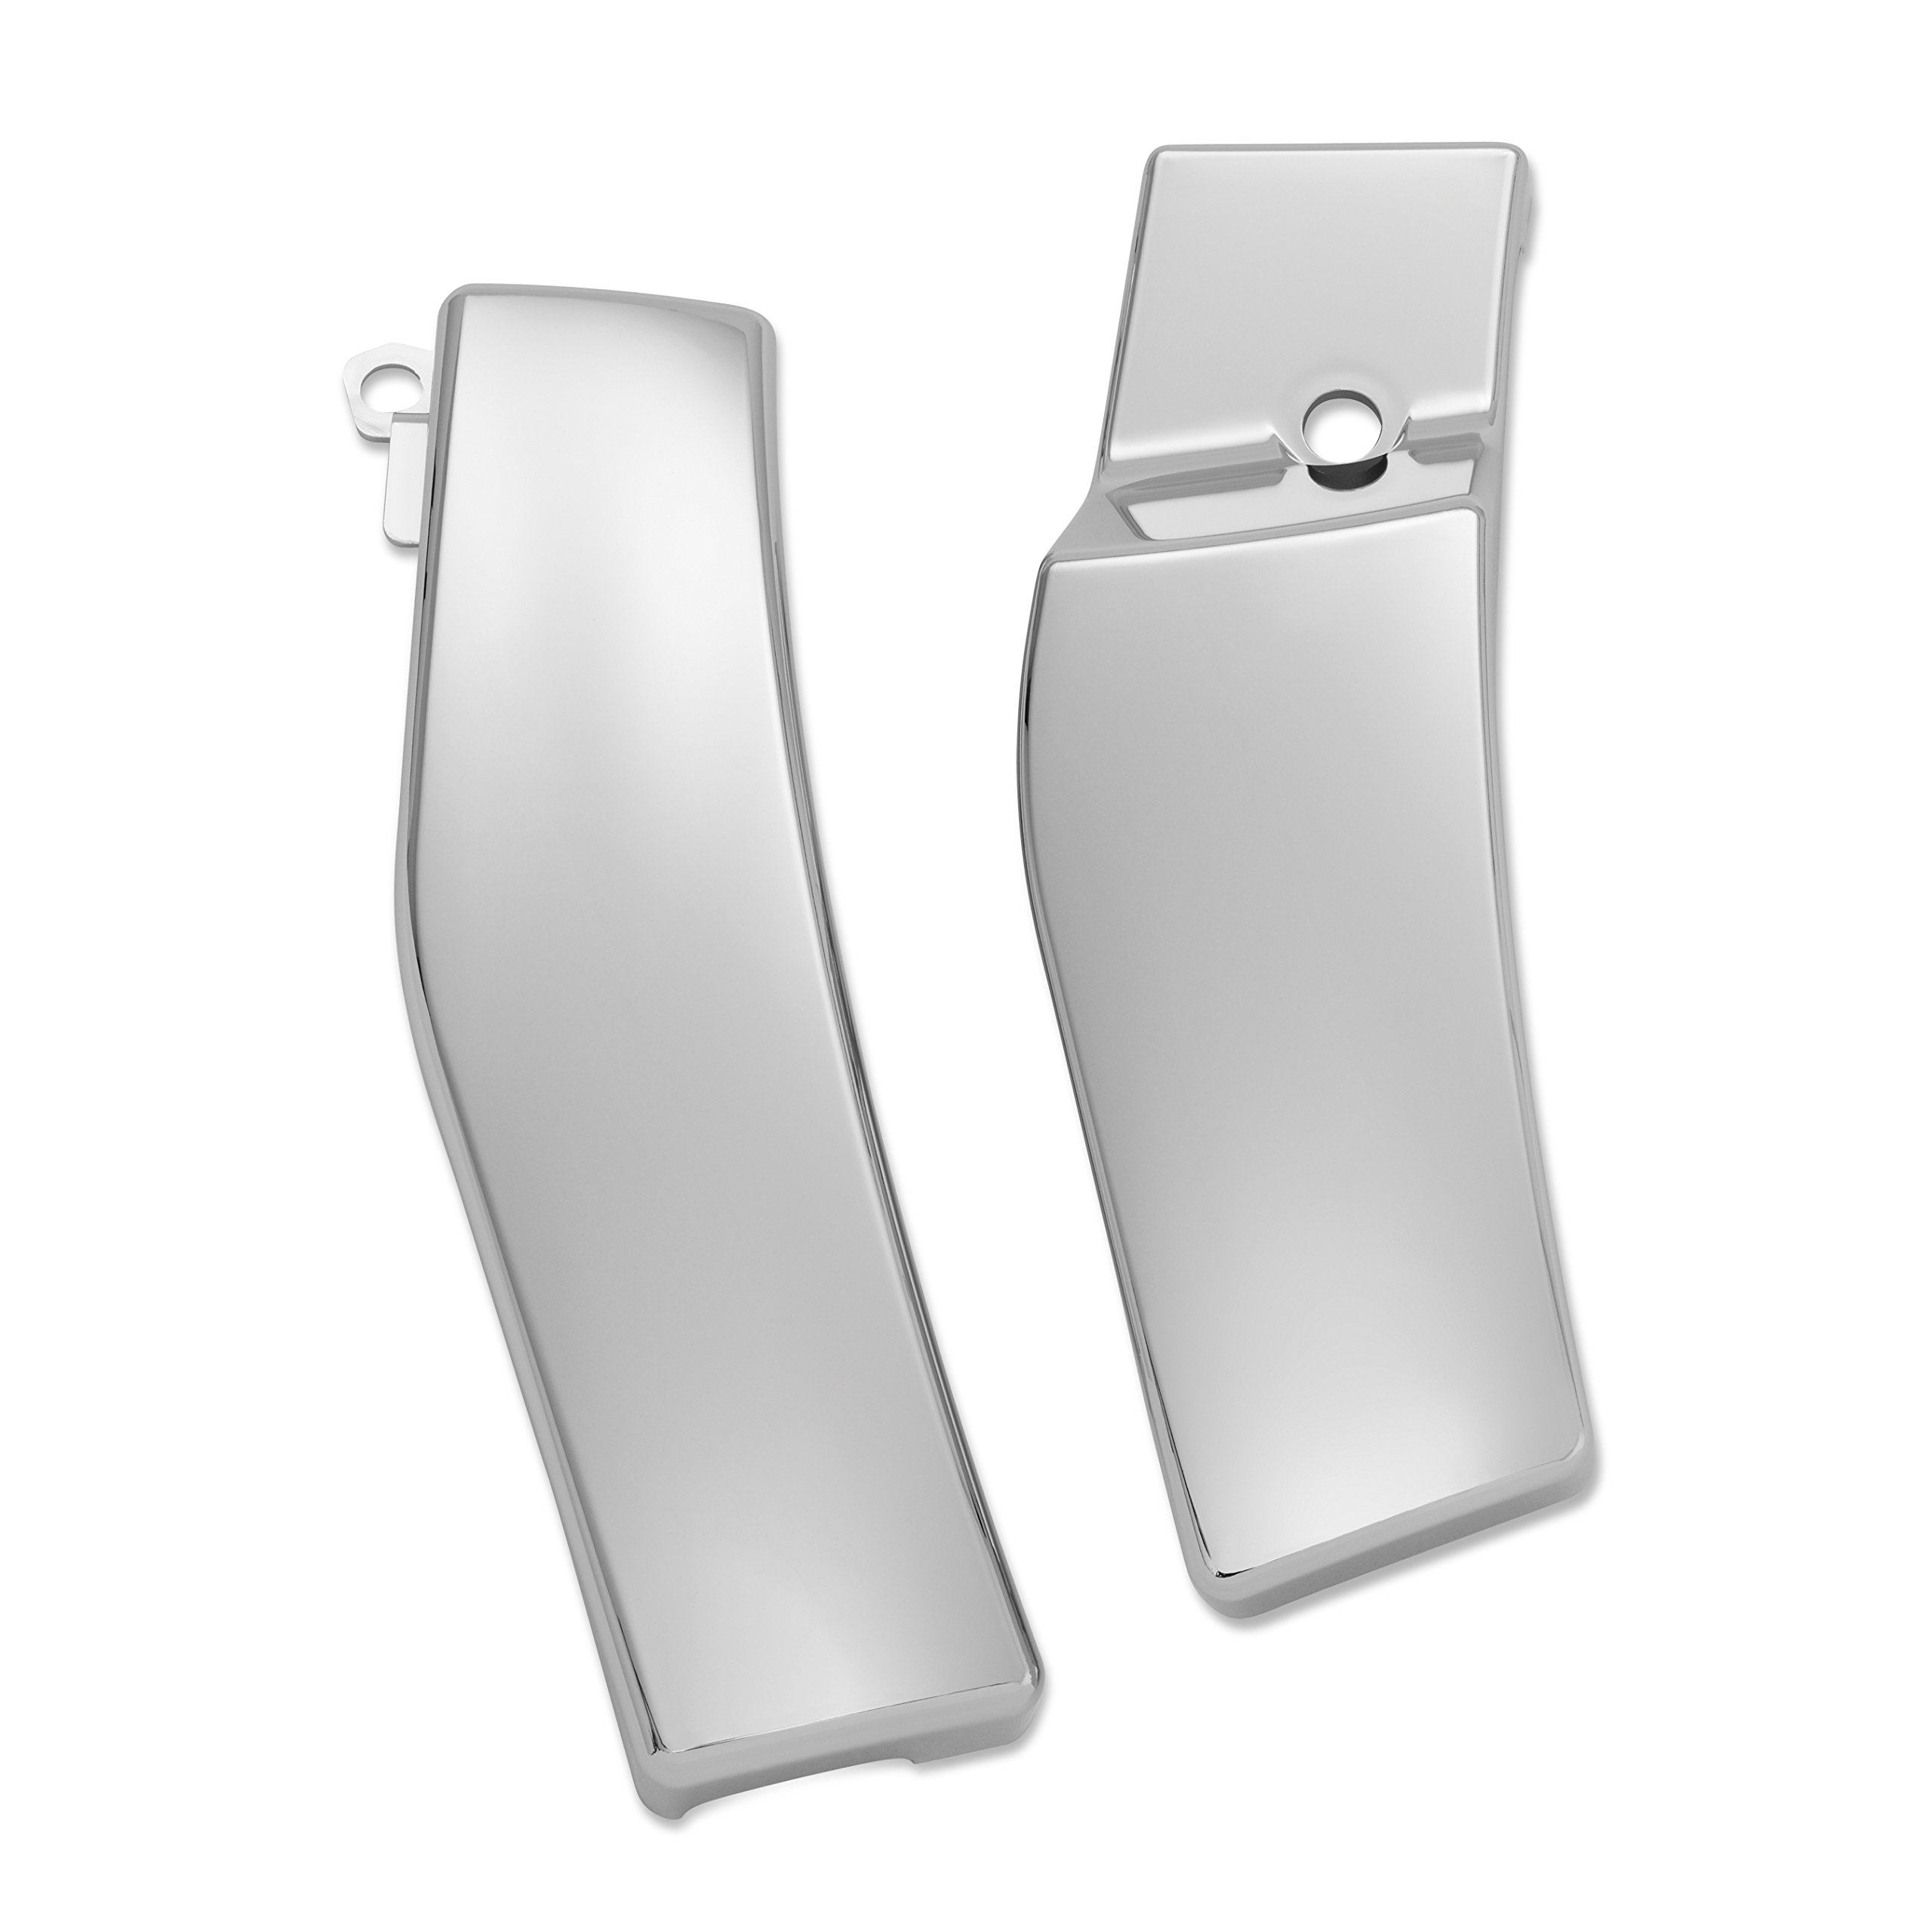 Show Chrome Accessories 82-216 Swing Arm Cover by Show Chrome Accessories